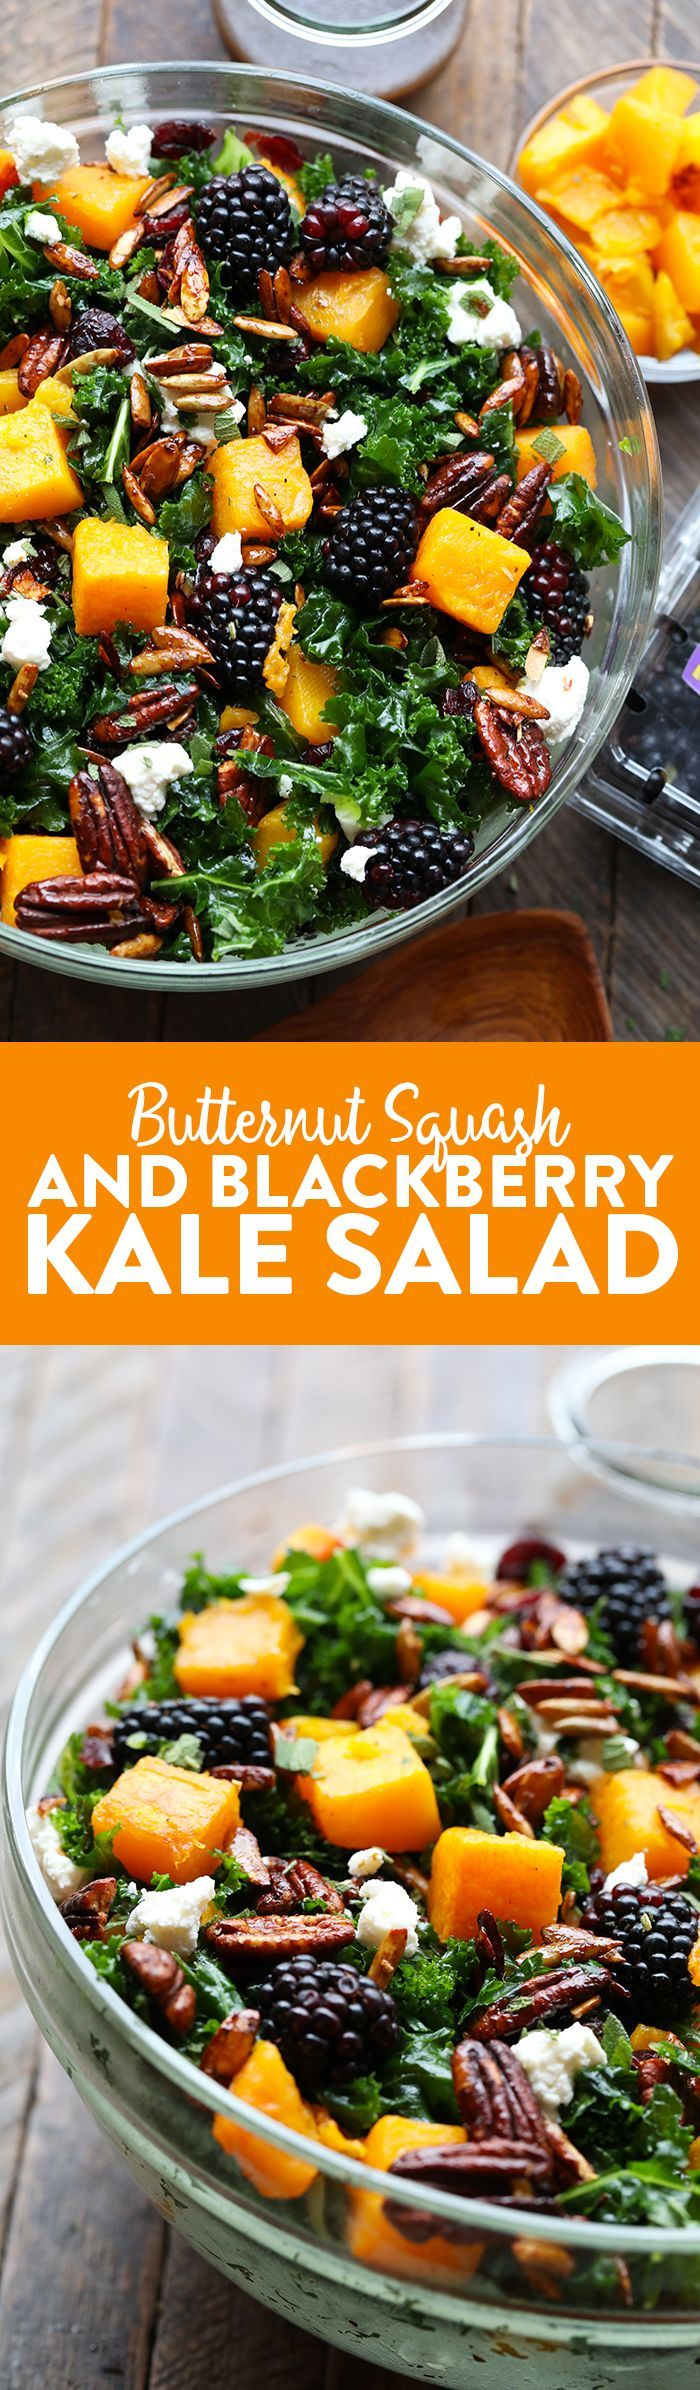 This Harvest Blackberry and Butternut Squash Massaged Kale Salad is an excellent healthy lunch or dinner and even doubles as a holiday salad to share. It's made with roasted butternut squash, candied nuts, Driscoll's blackberries, and massaged kale with a